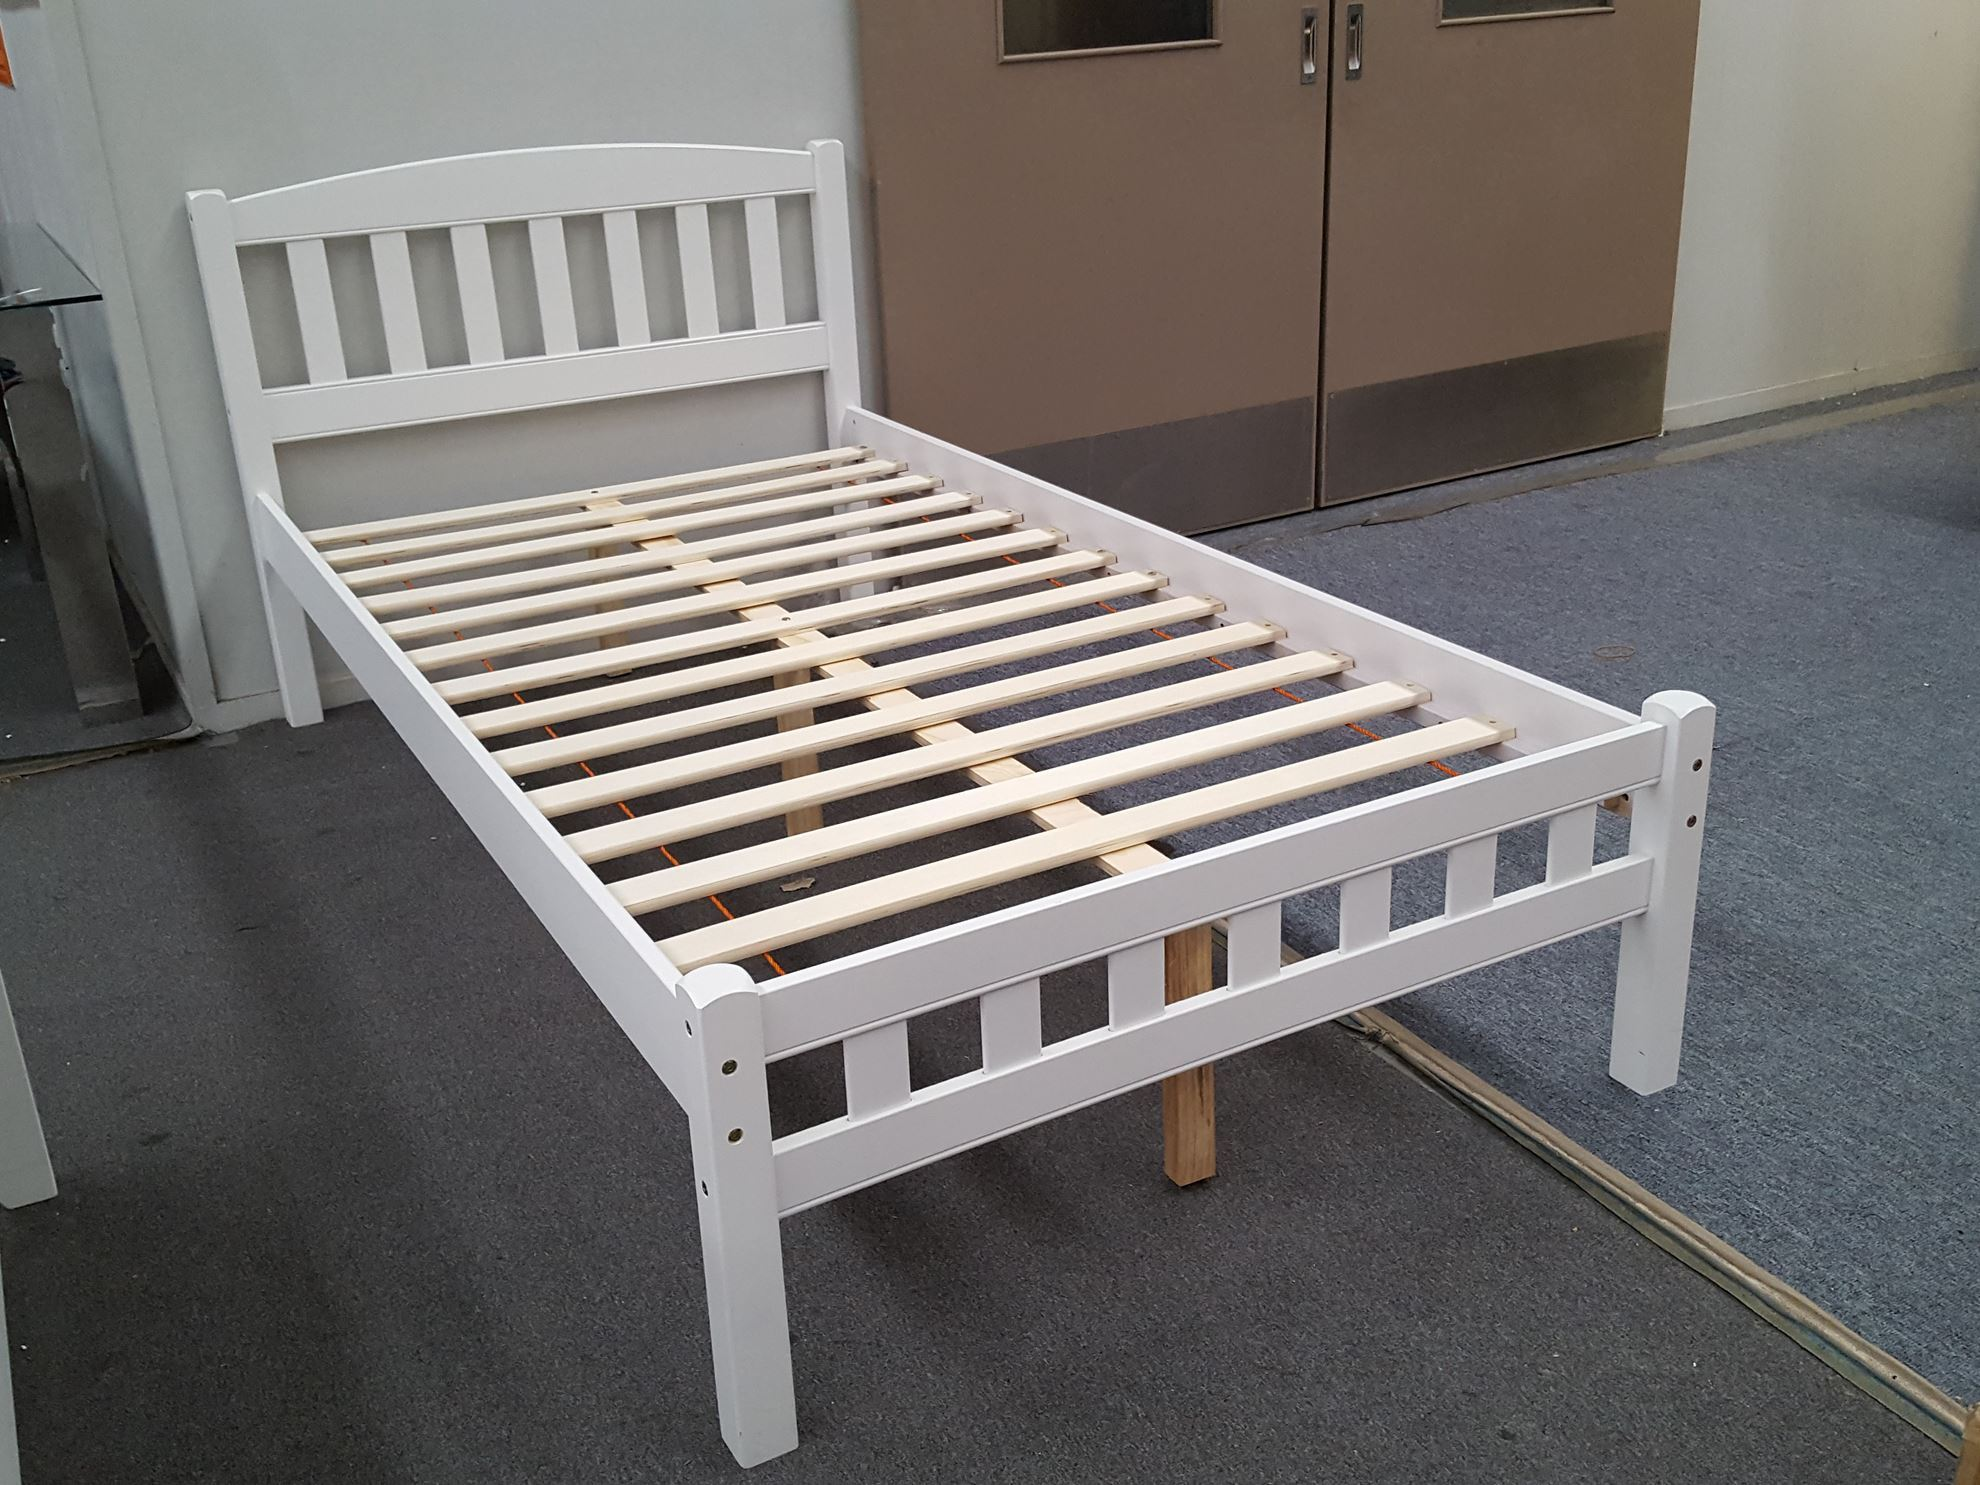 Furniture Place Zara King Single Bed In White